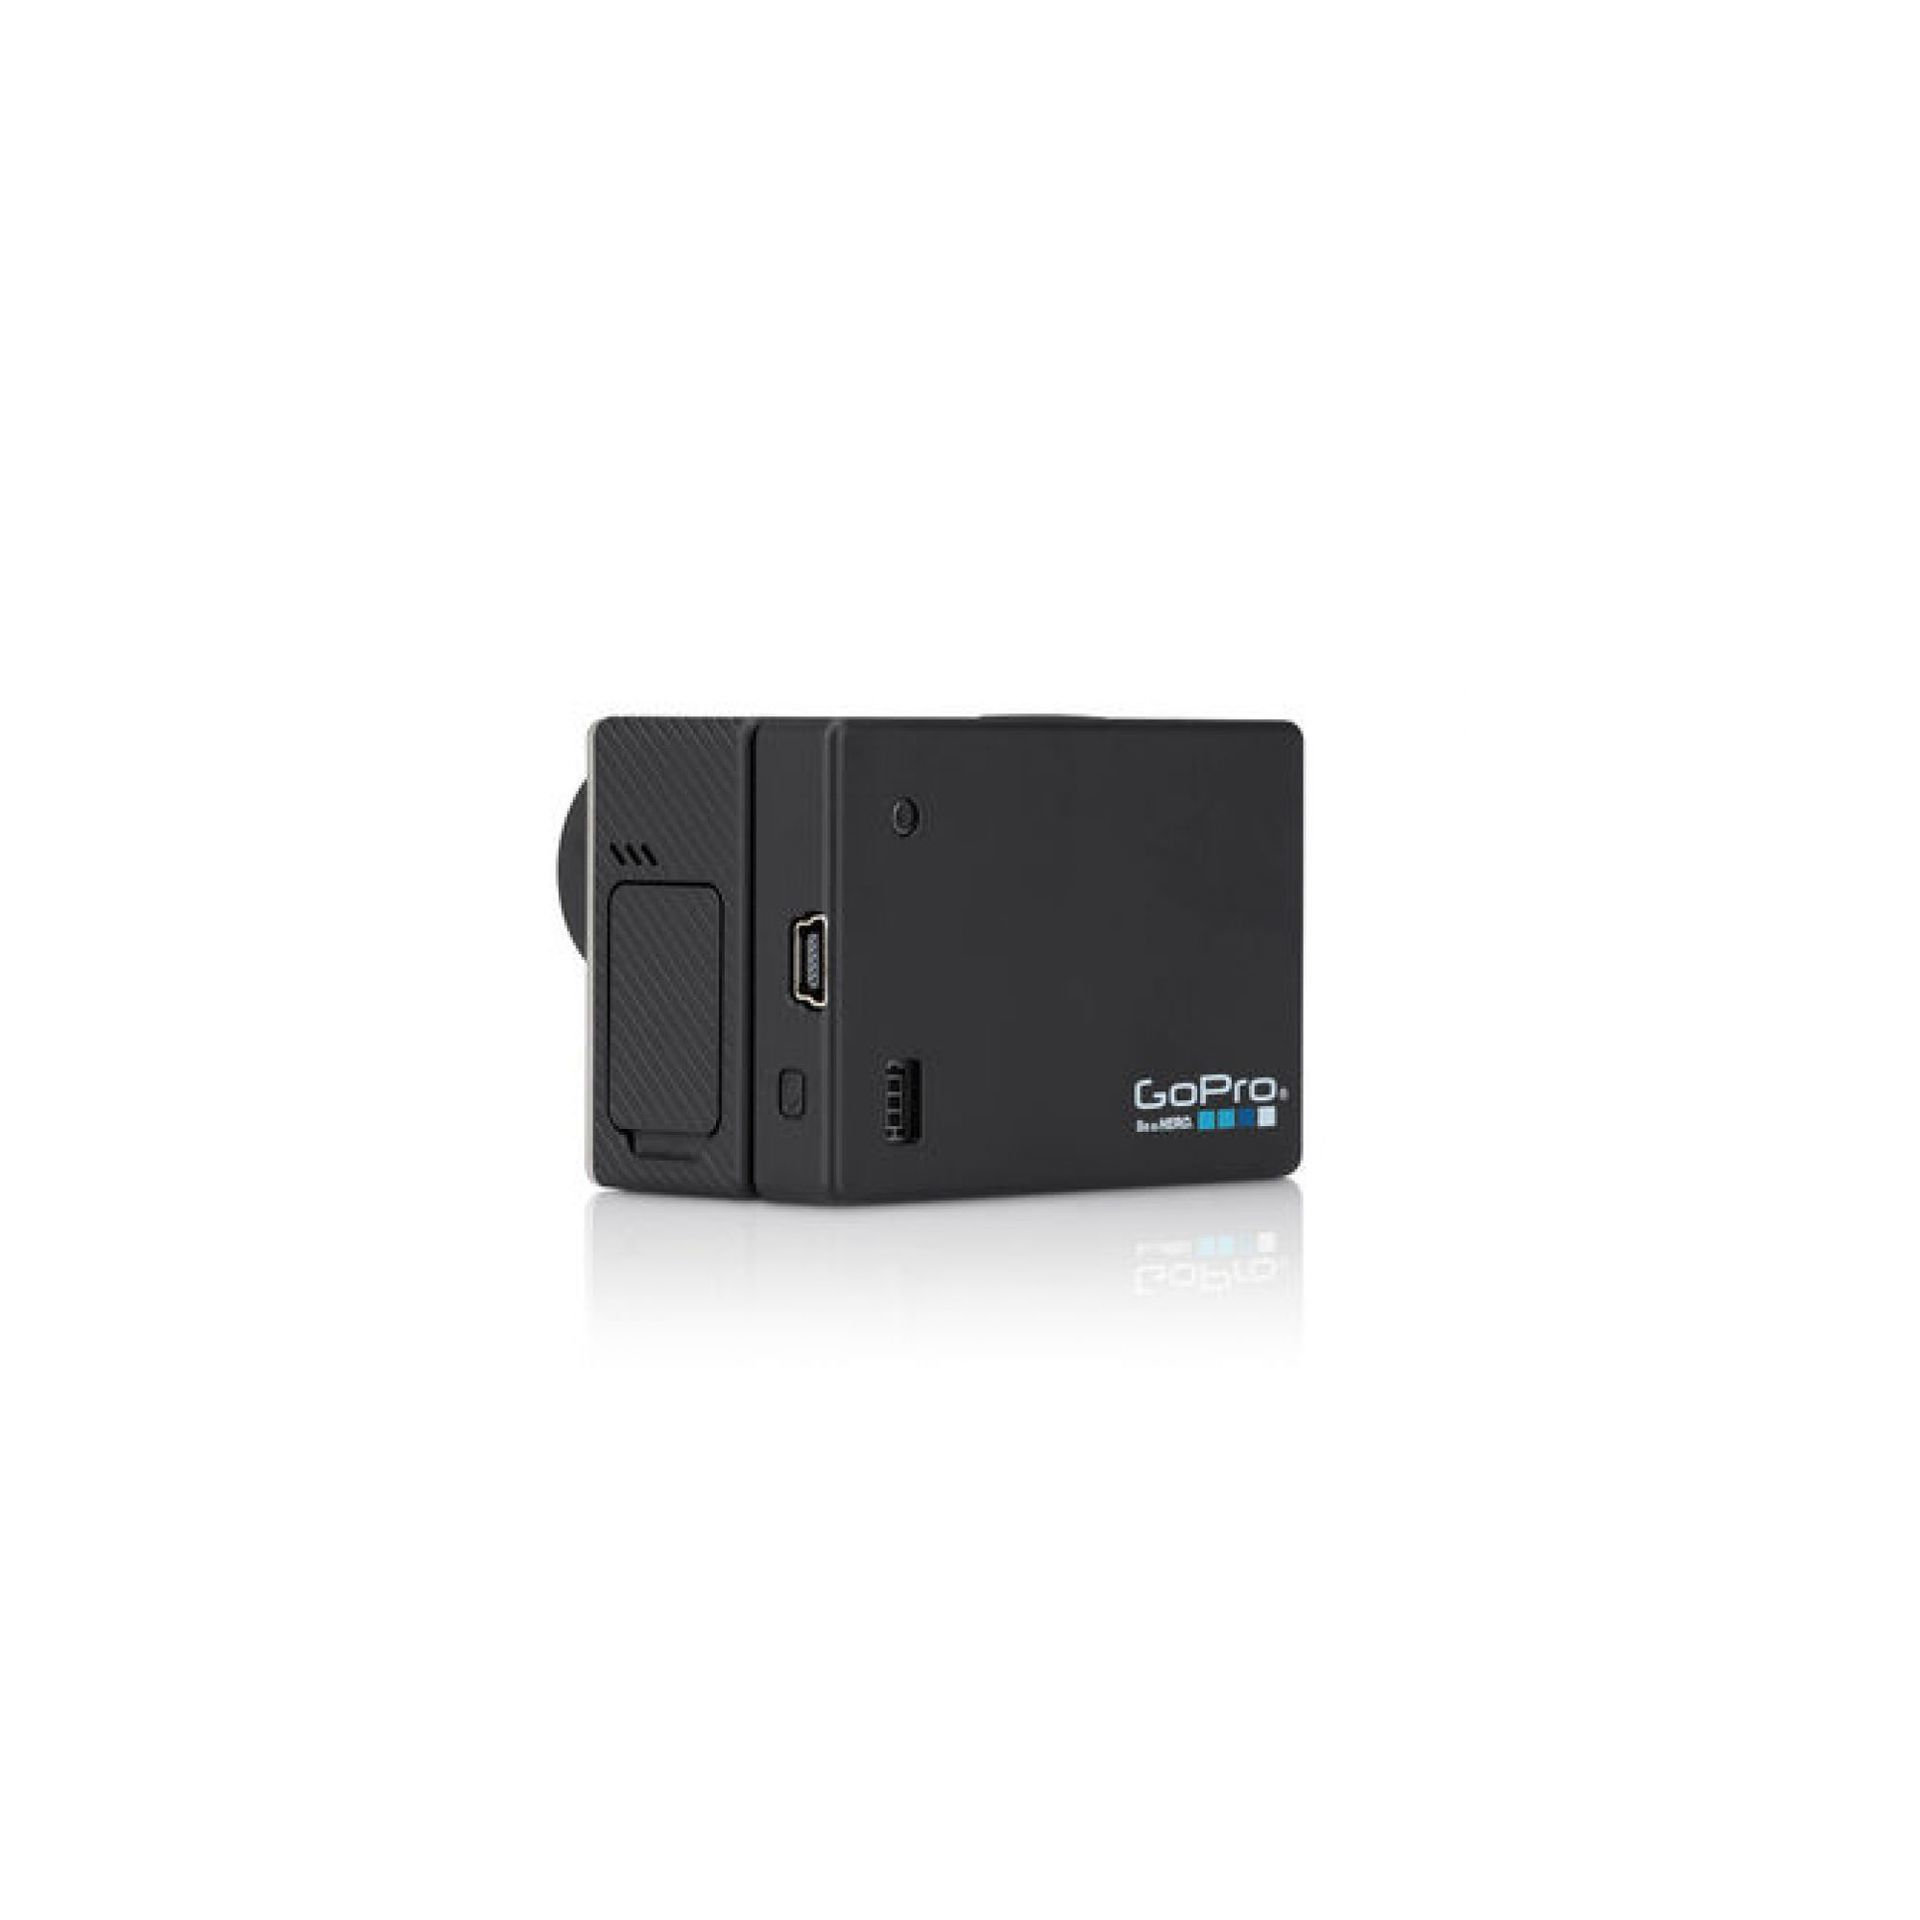 BATERIA DO KAMER GOPRO BATTERY BACPAC 1